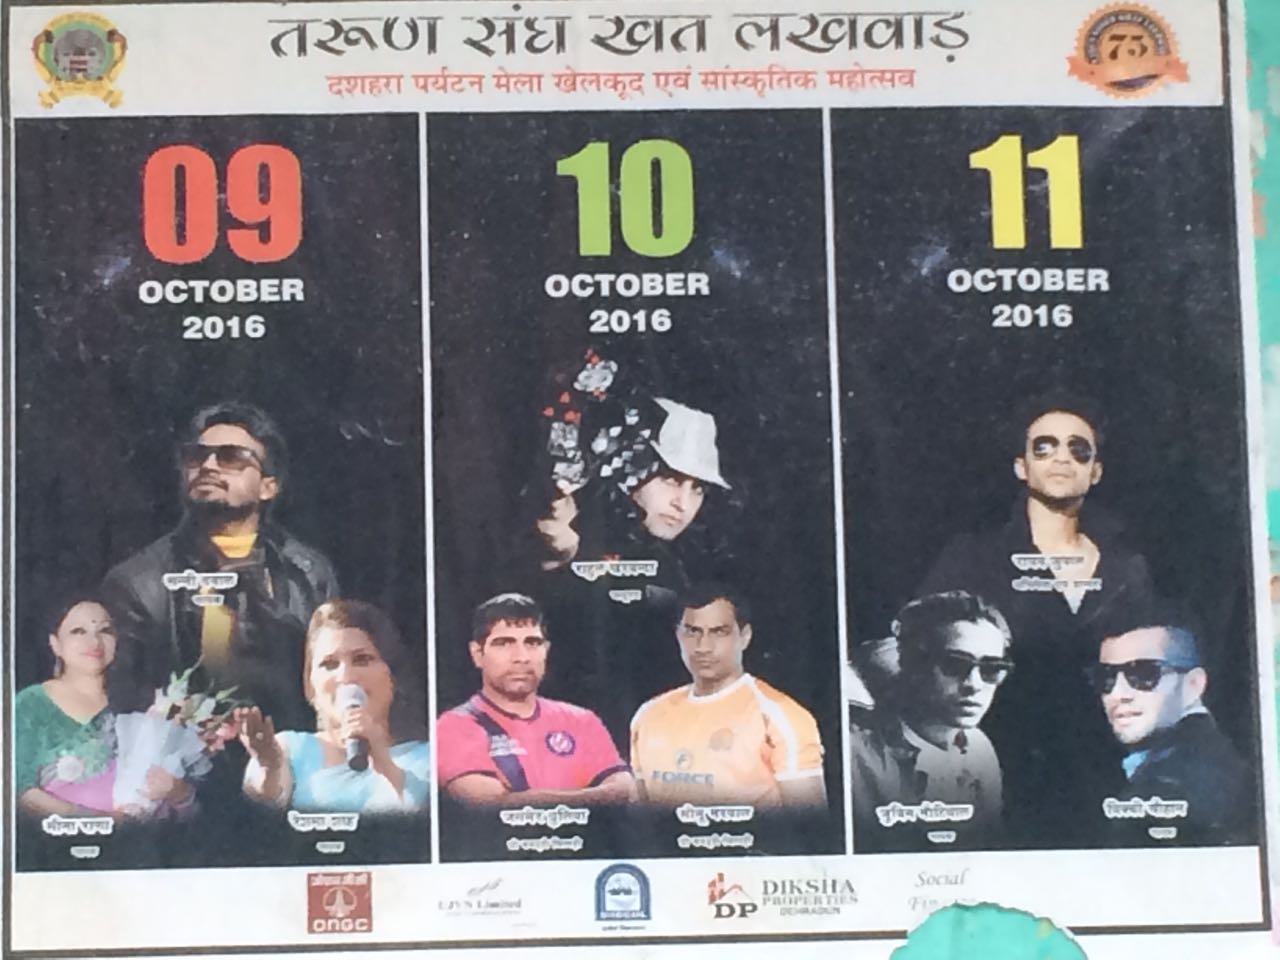 Rahul with other Artists in LAKHWAR Festival (Uttrakhand)